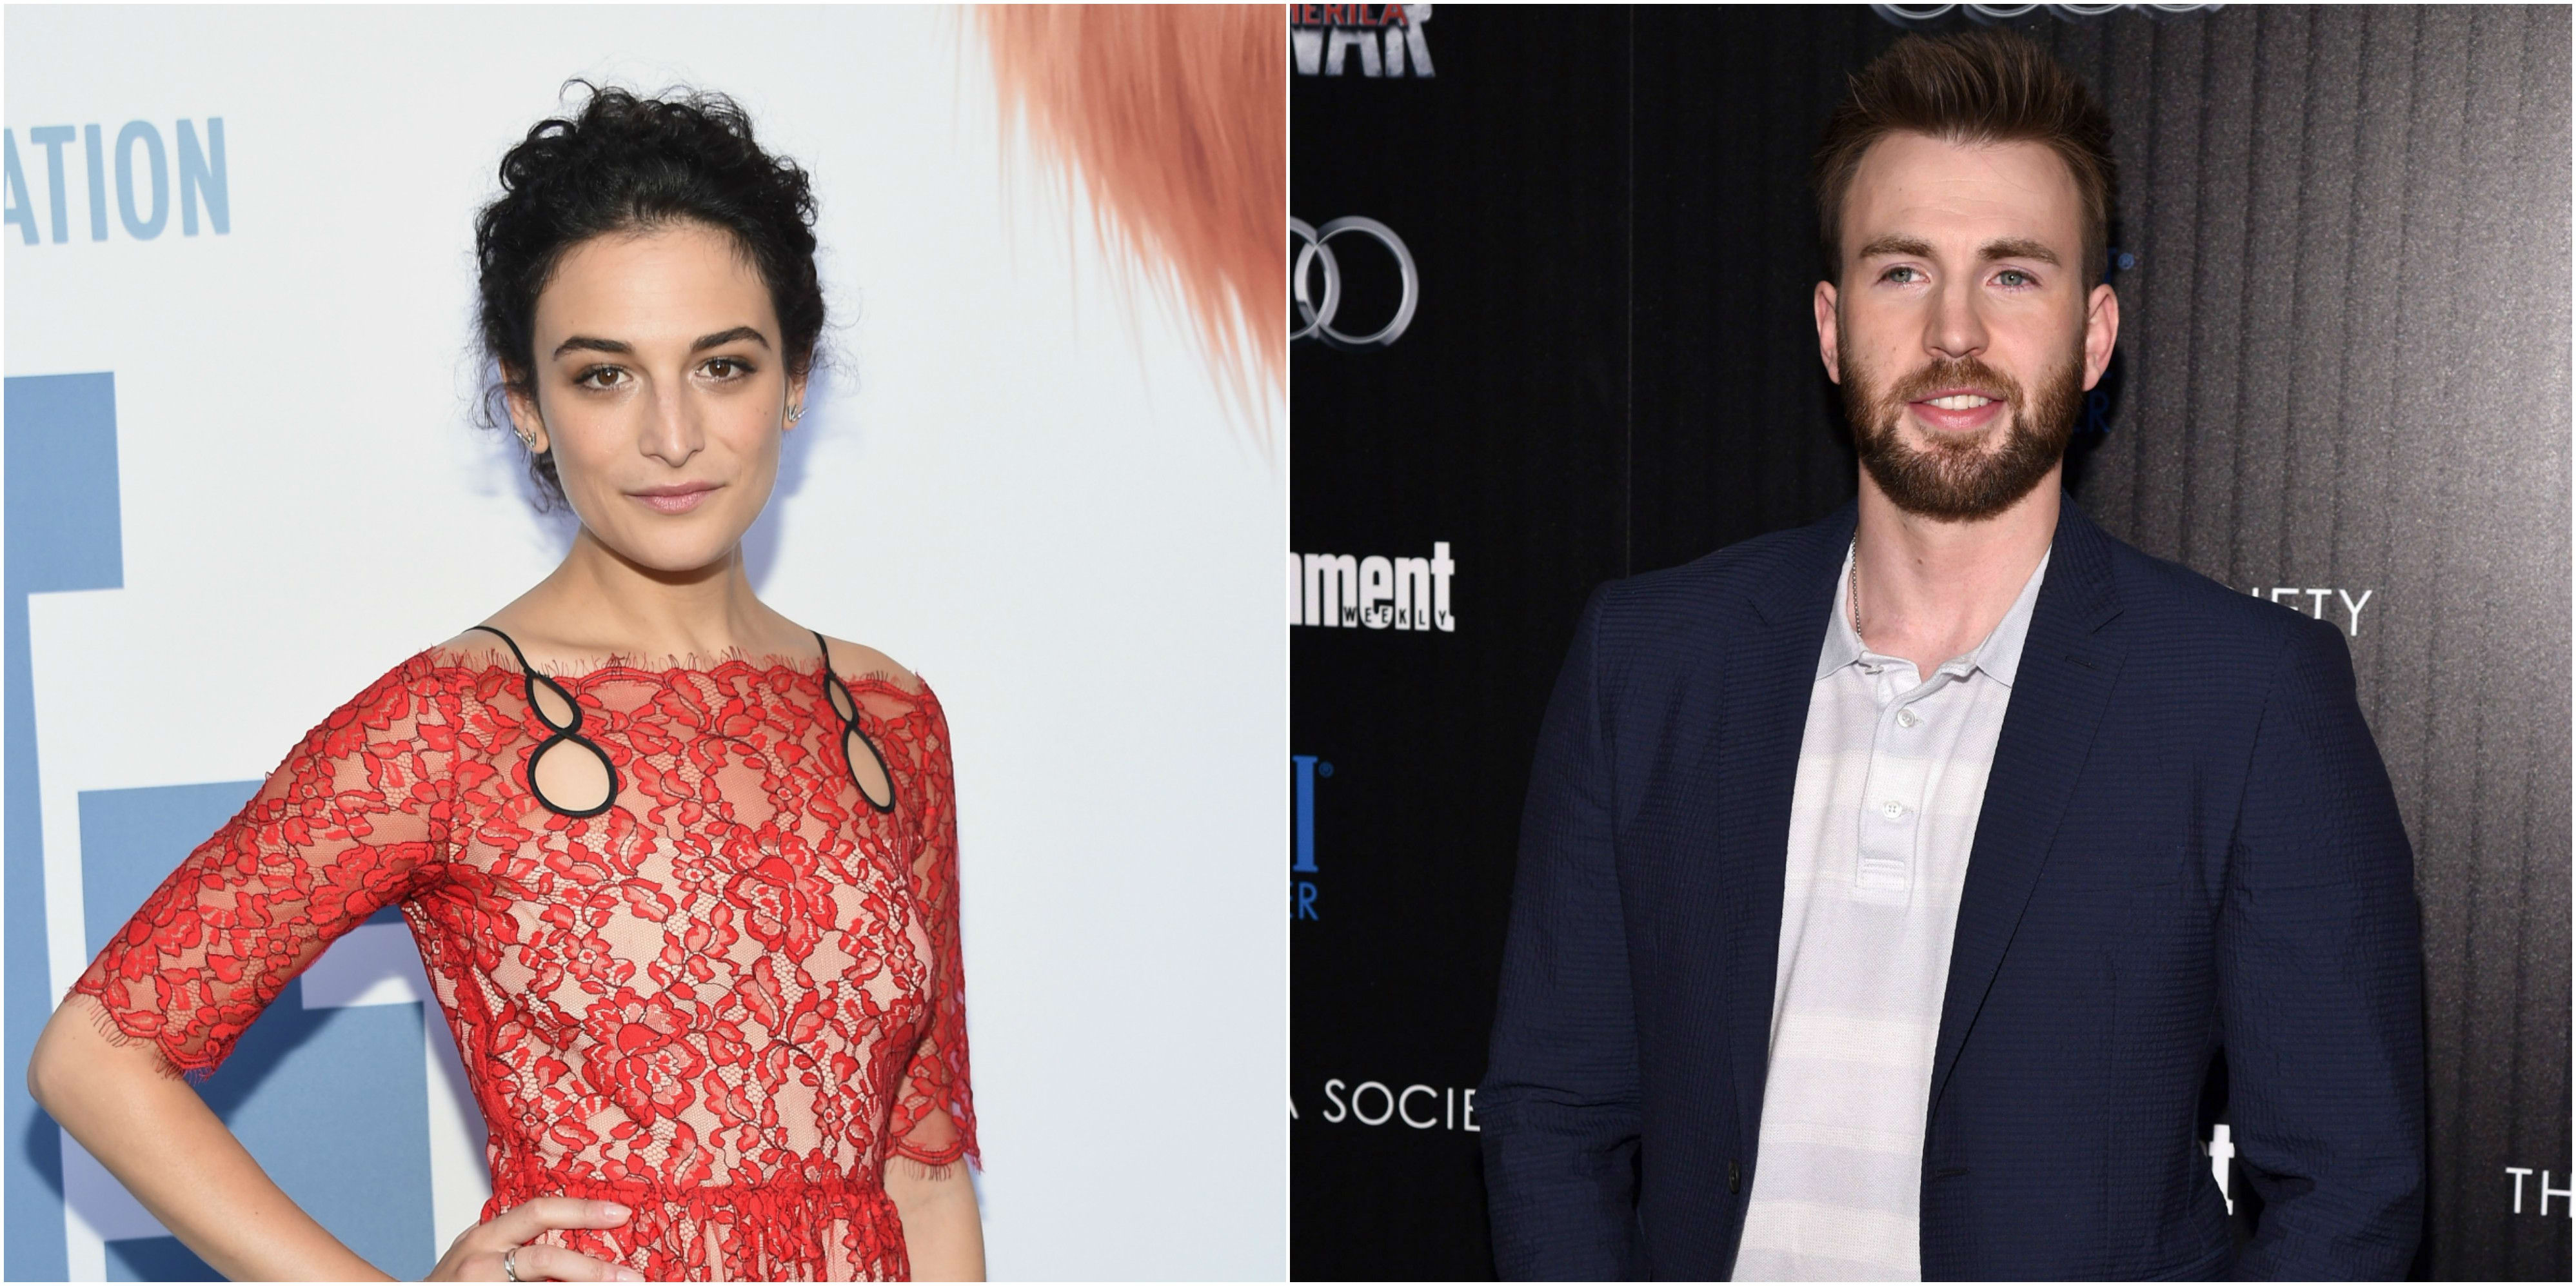 Watch Chris Evans and Jenny Slates breakup prove you shouldnt get back with an ex video